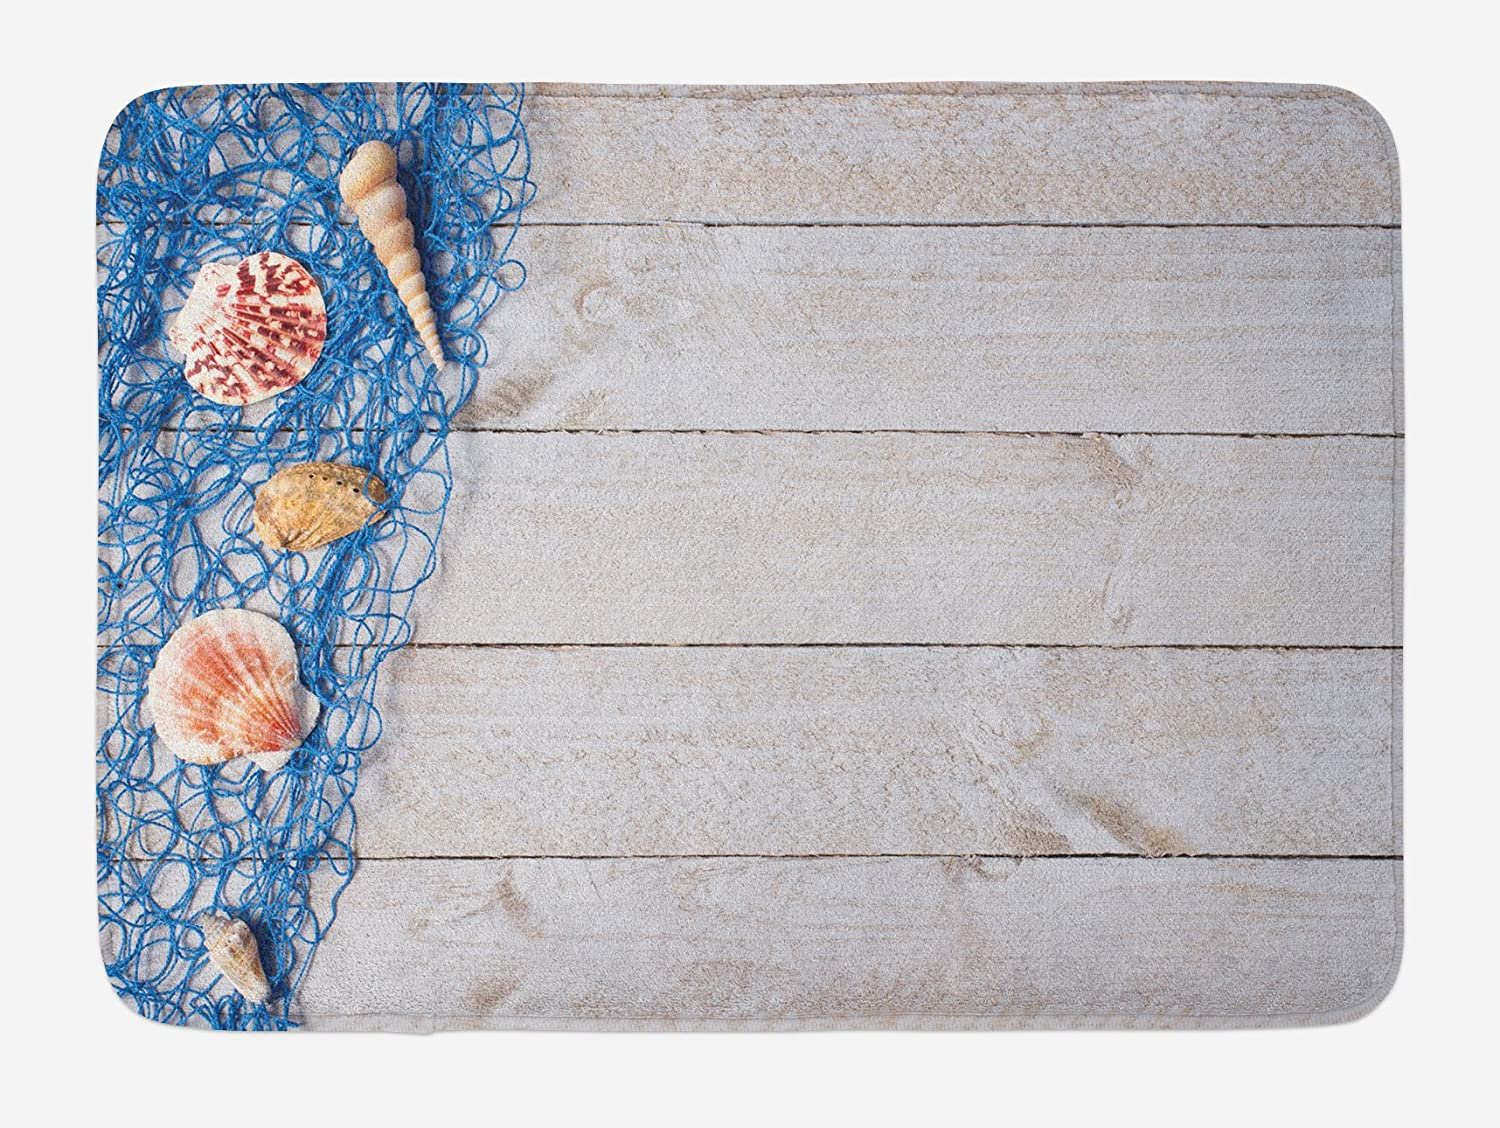 Lunarable Rustic Bath Mat, Marine Nautical Composition on an Oak Backdrop Shell Fishing Net Web Summer Image, Plush Bathroom Decor Mat with Non Slip Backing, 29.5